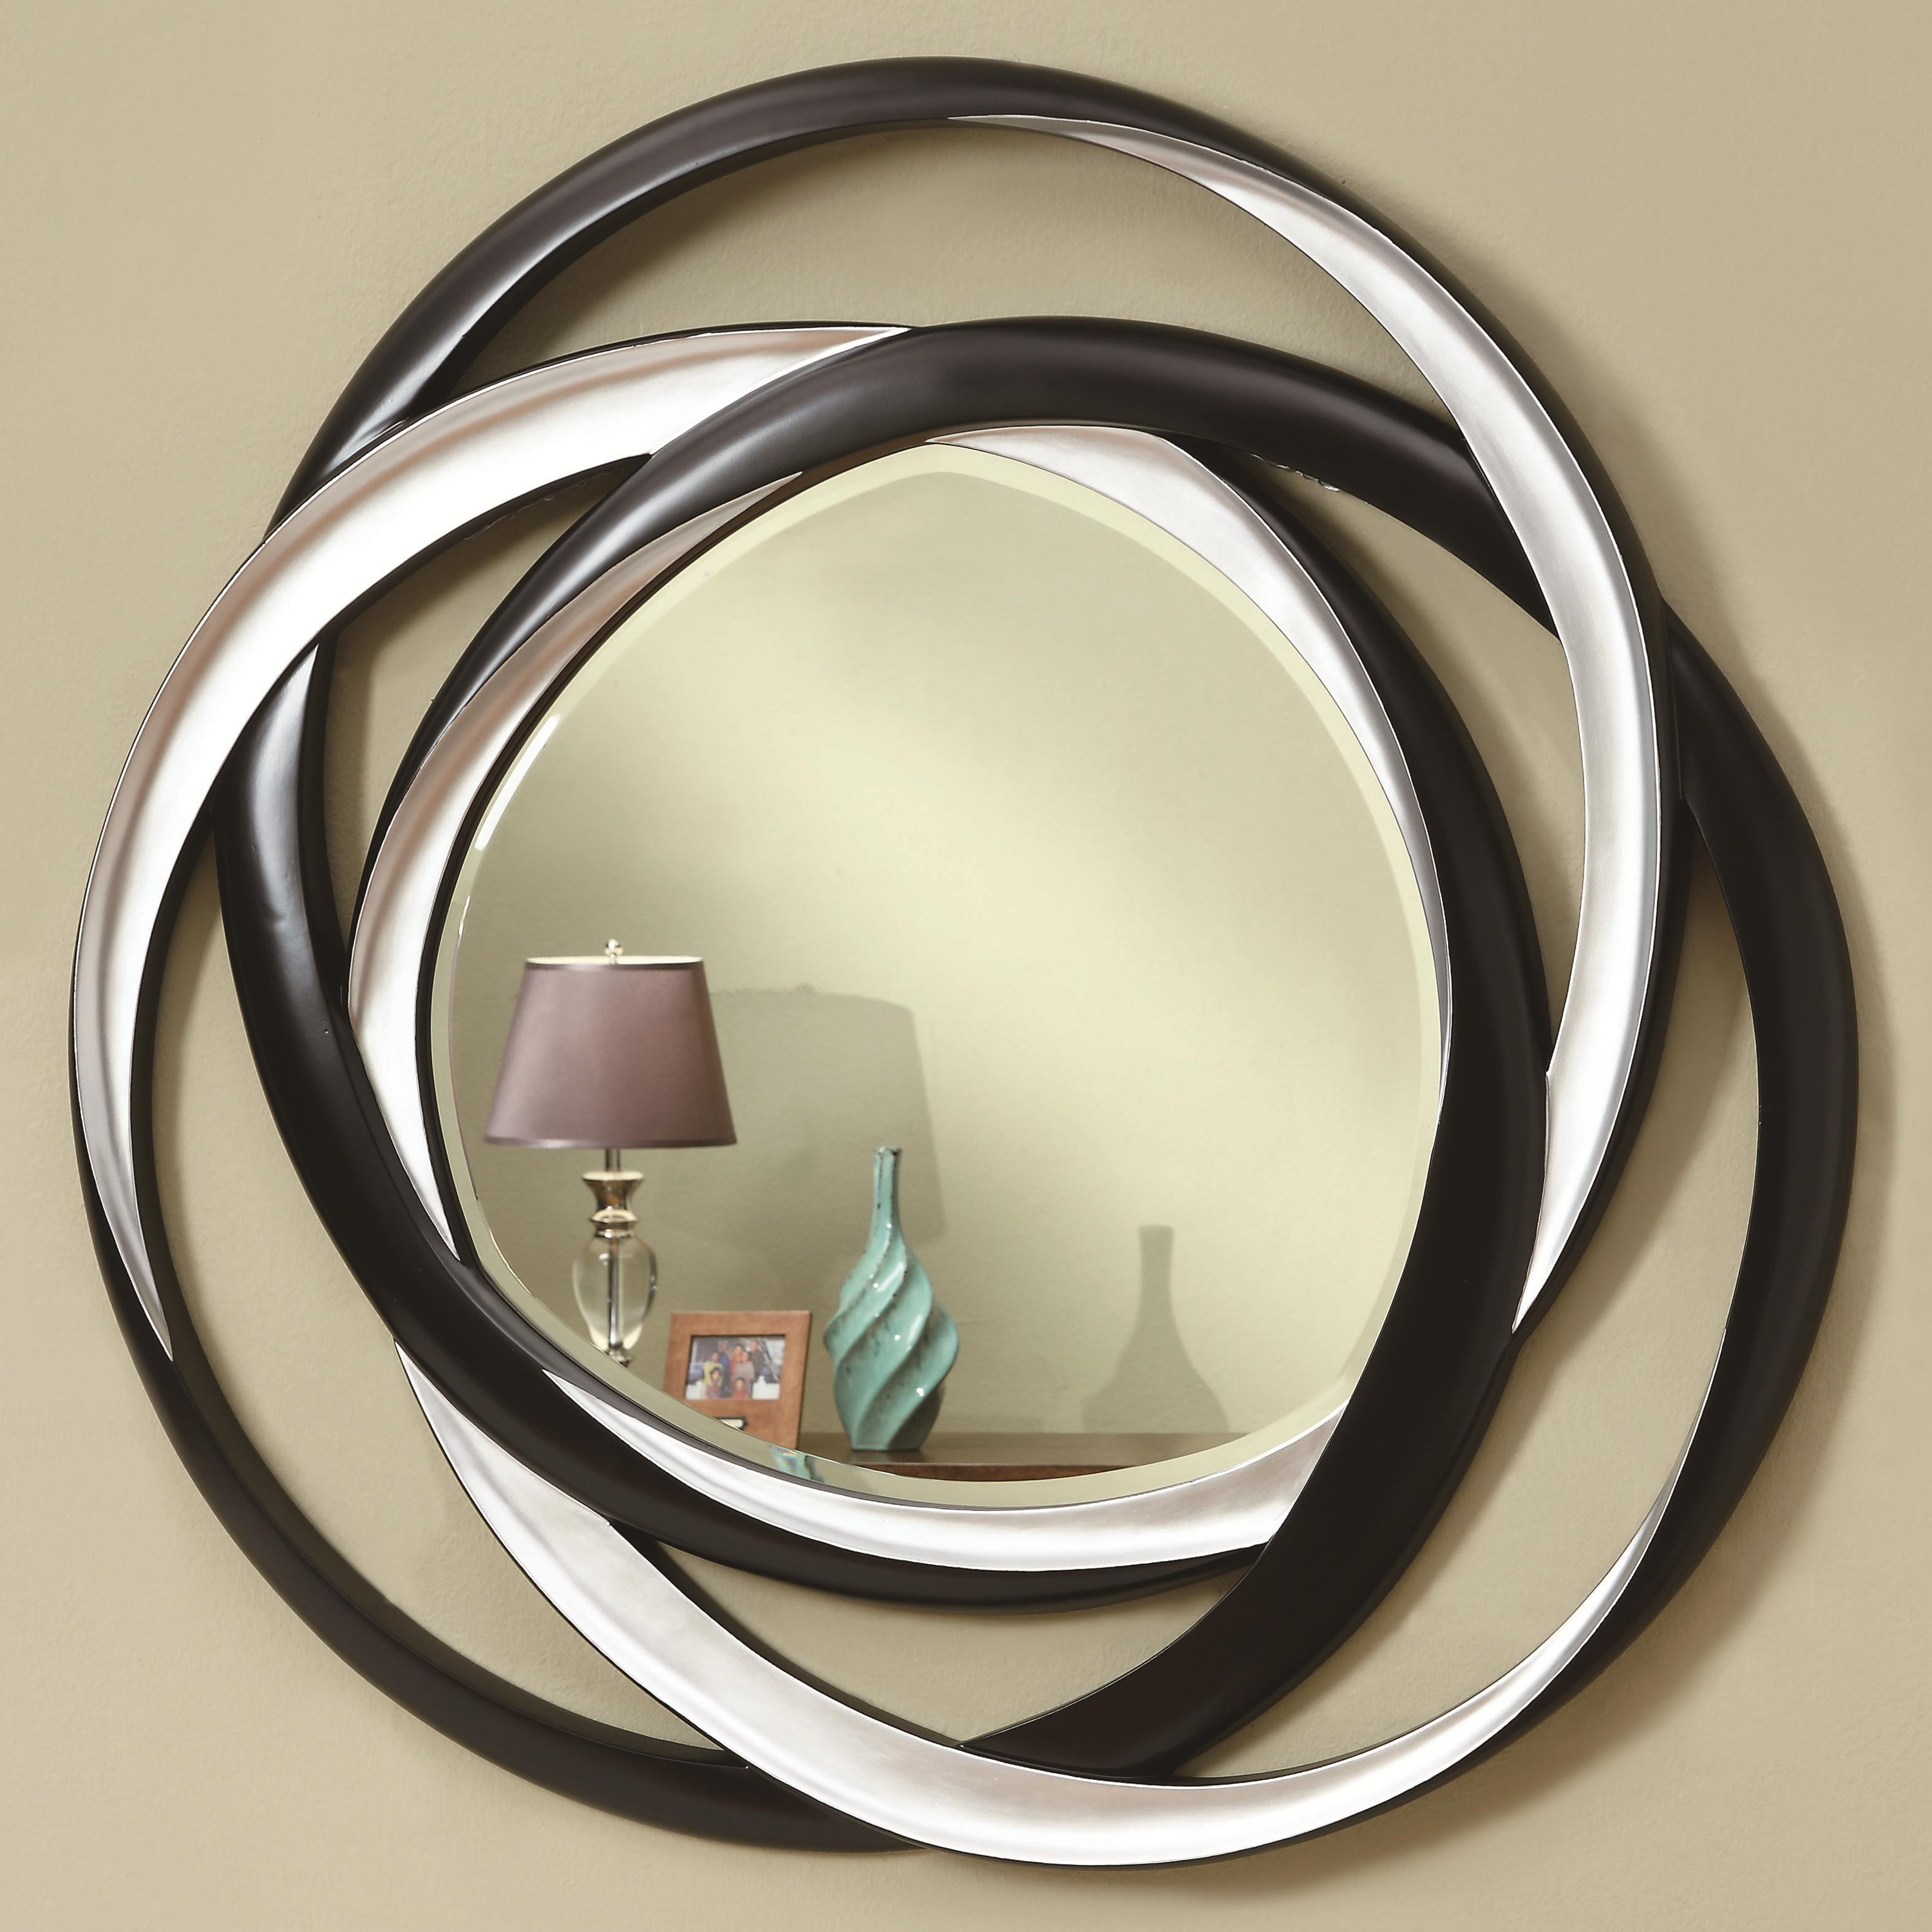 Accent Mirrors Two Tone Contemporary Mirrorcoaster At Dunk & Bright Furniture Intended For Trendy Contemporary Black Wall Mirrors (View 14 of 20)